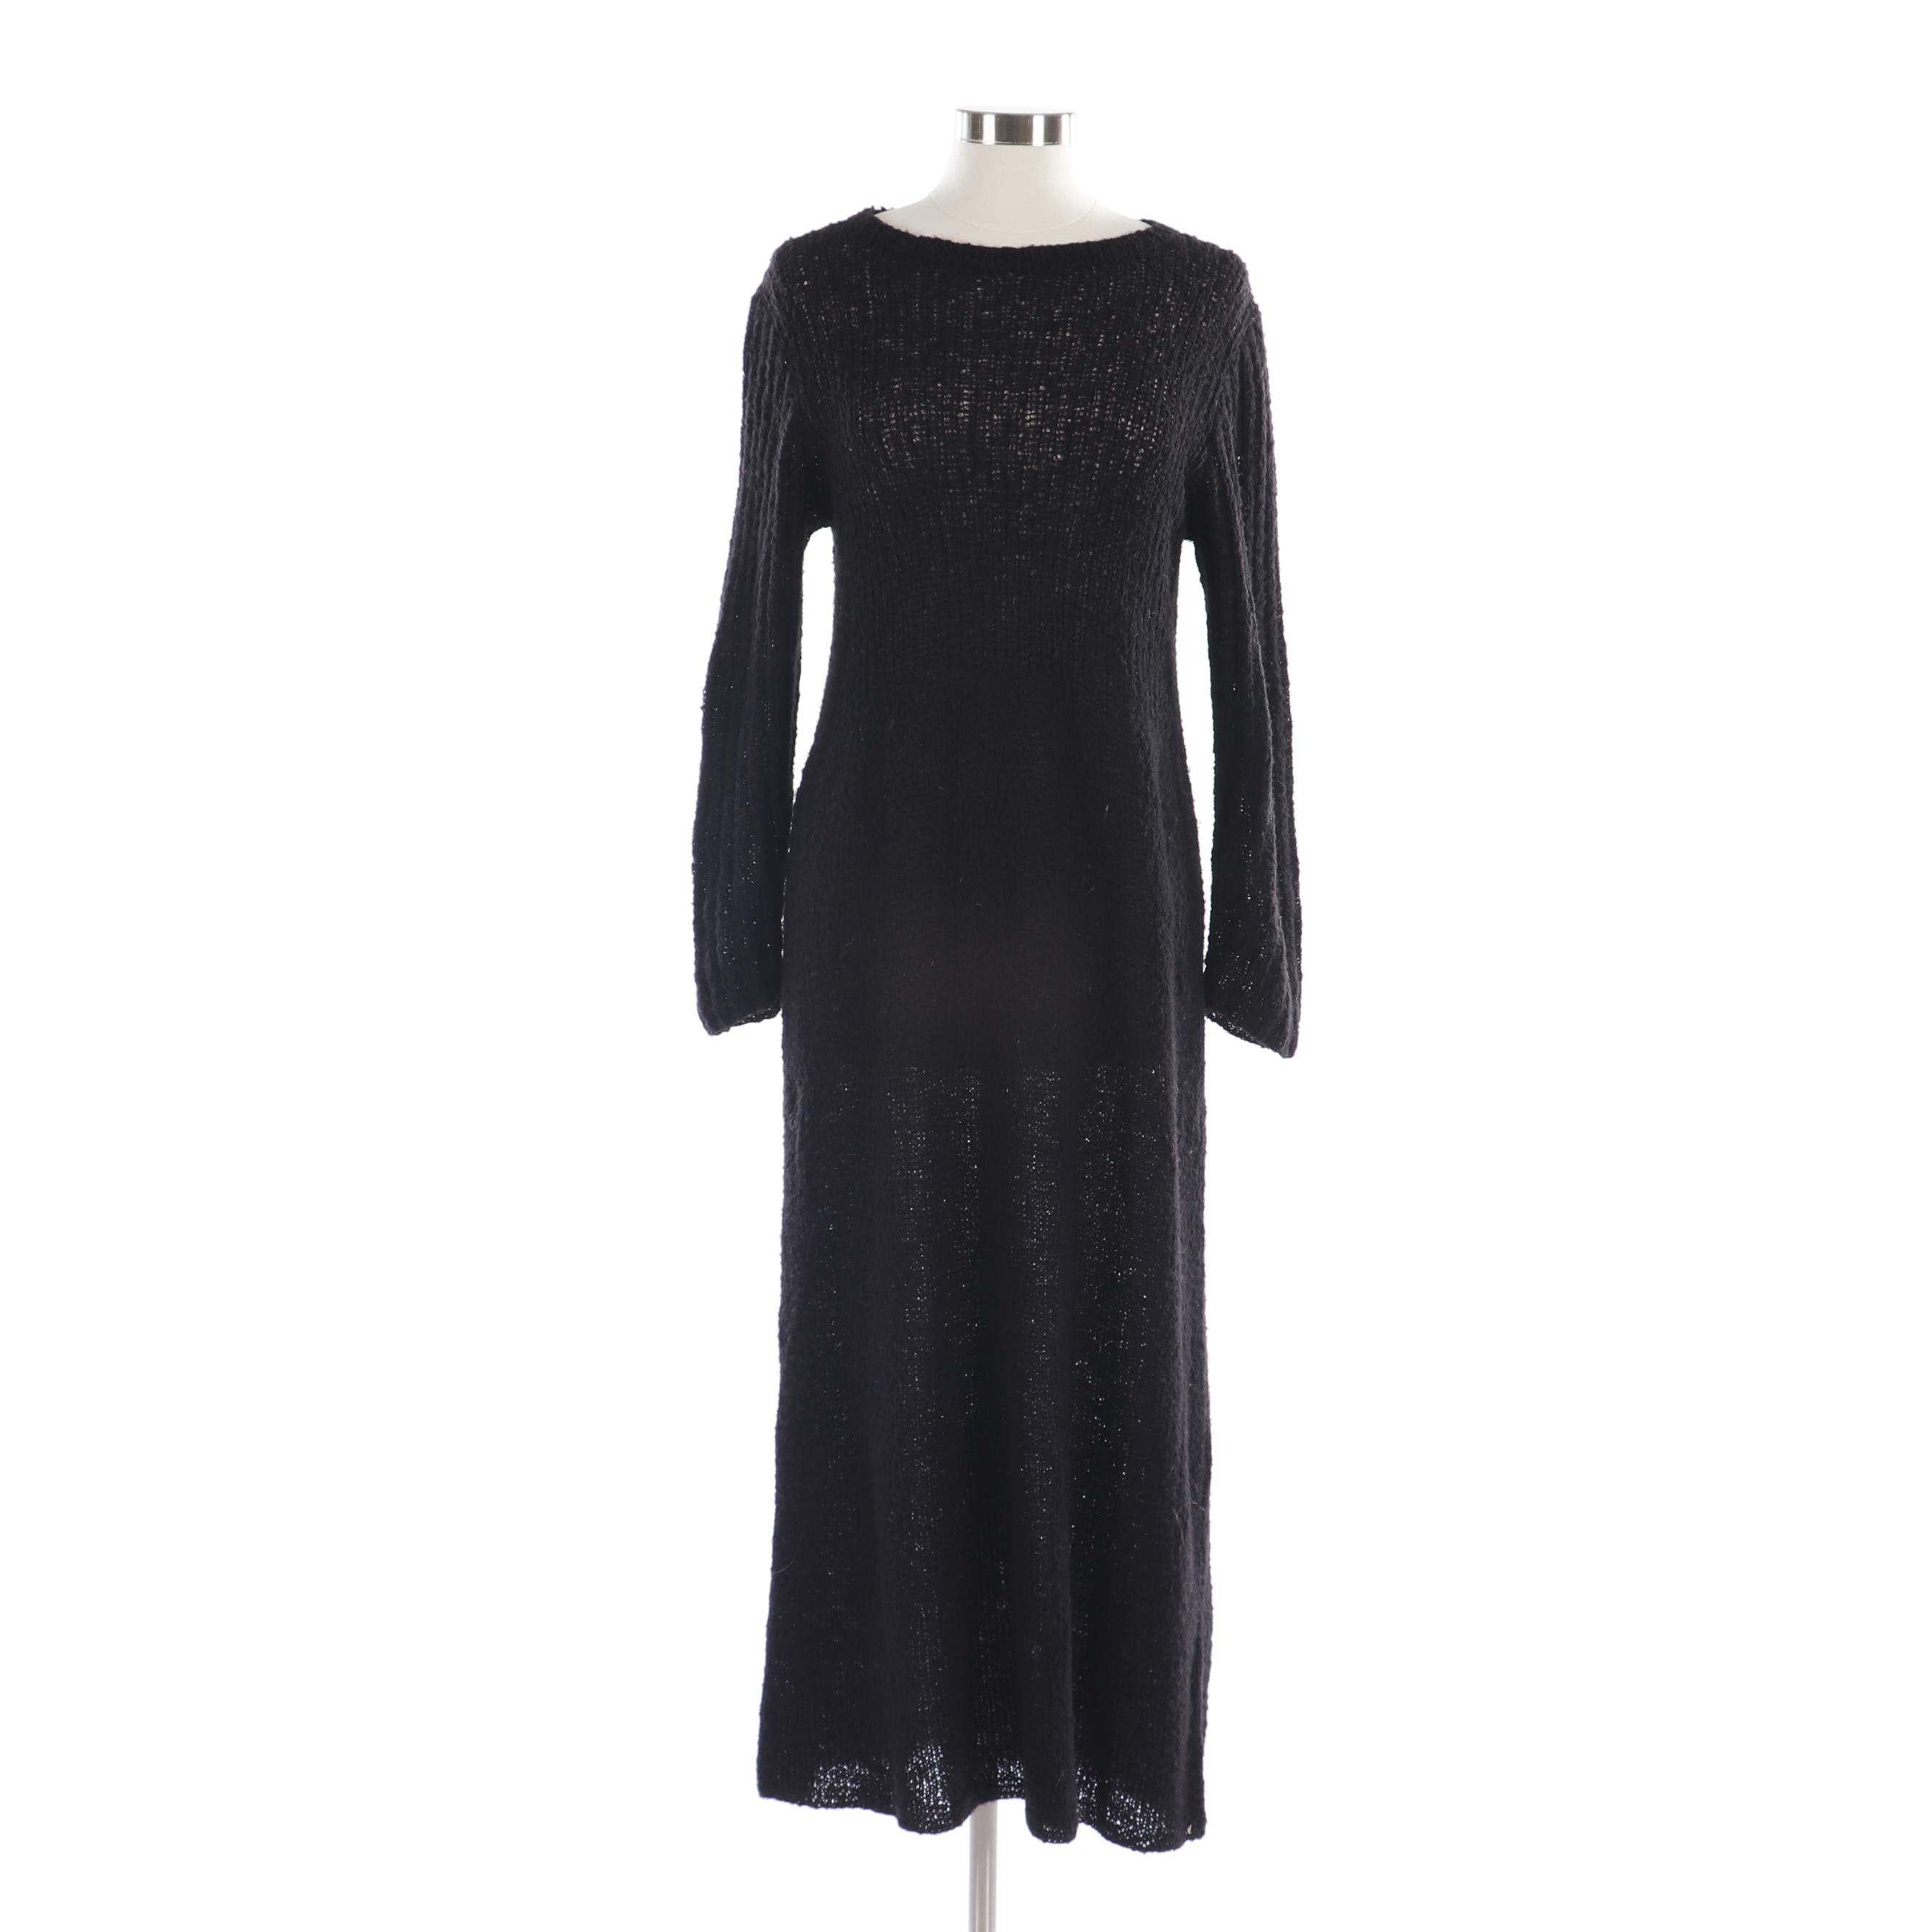 Women's Robin Richman Black Wool Long Sleeve Sweater Dress